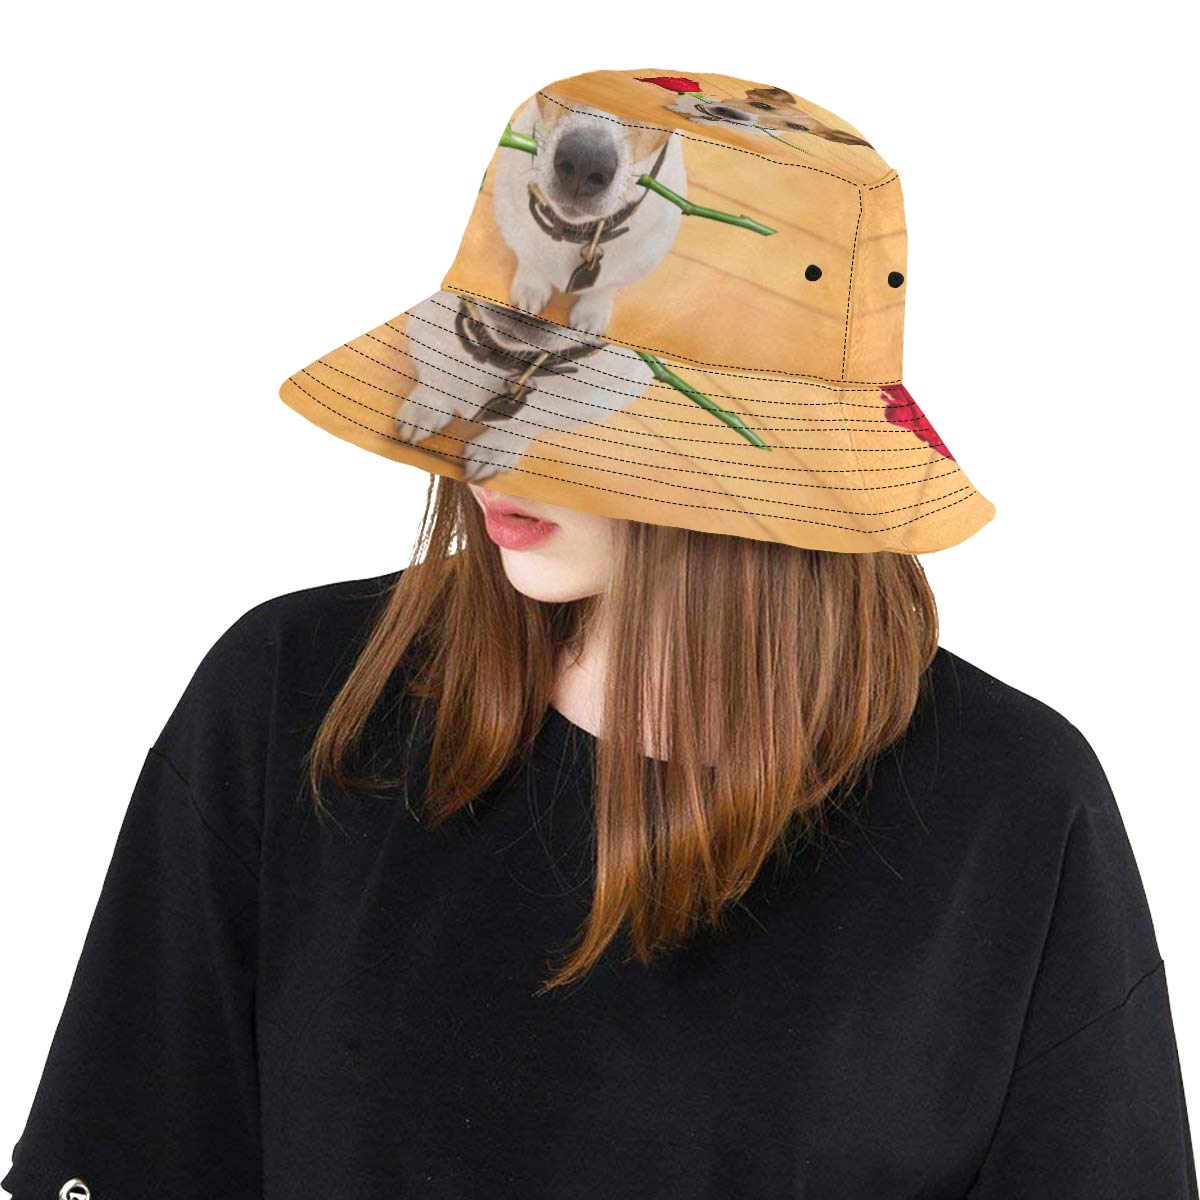 Rose Love Dog Summer Unisex Fishing Sun Top Bucket Hats for Kid Teens Women and Men with Packable Fisherman Cap for Outdoor Baseball Sport Picnic